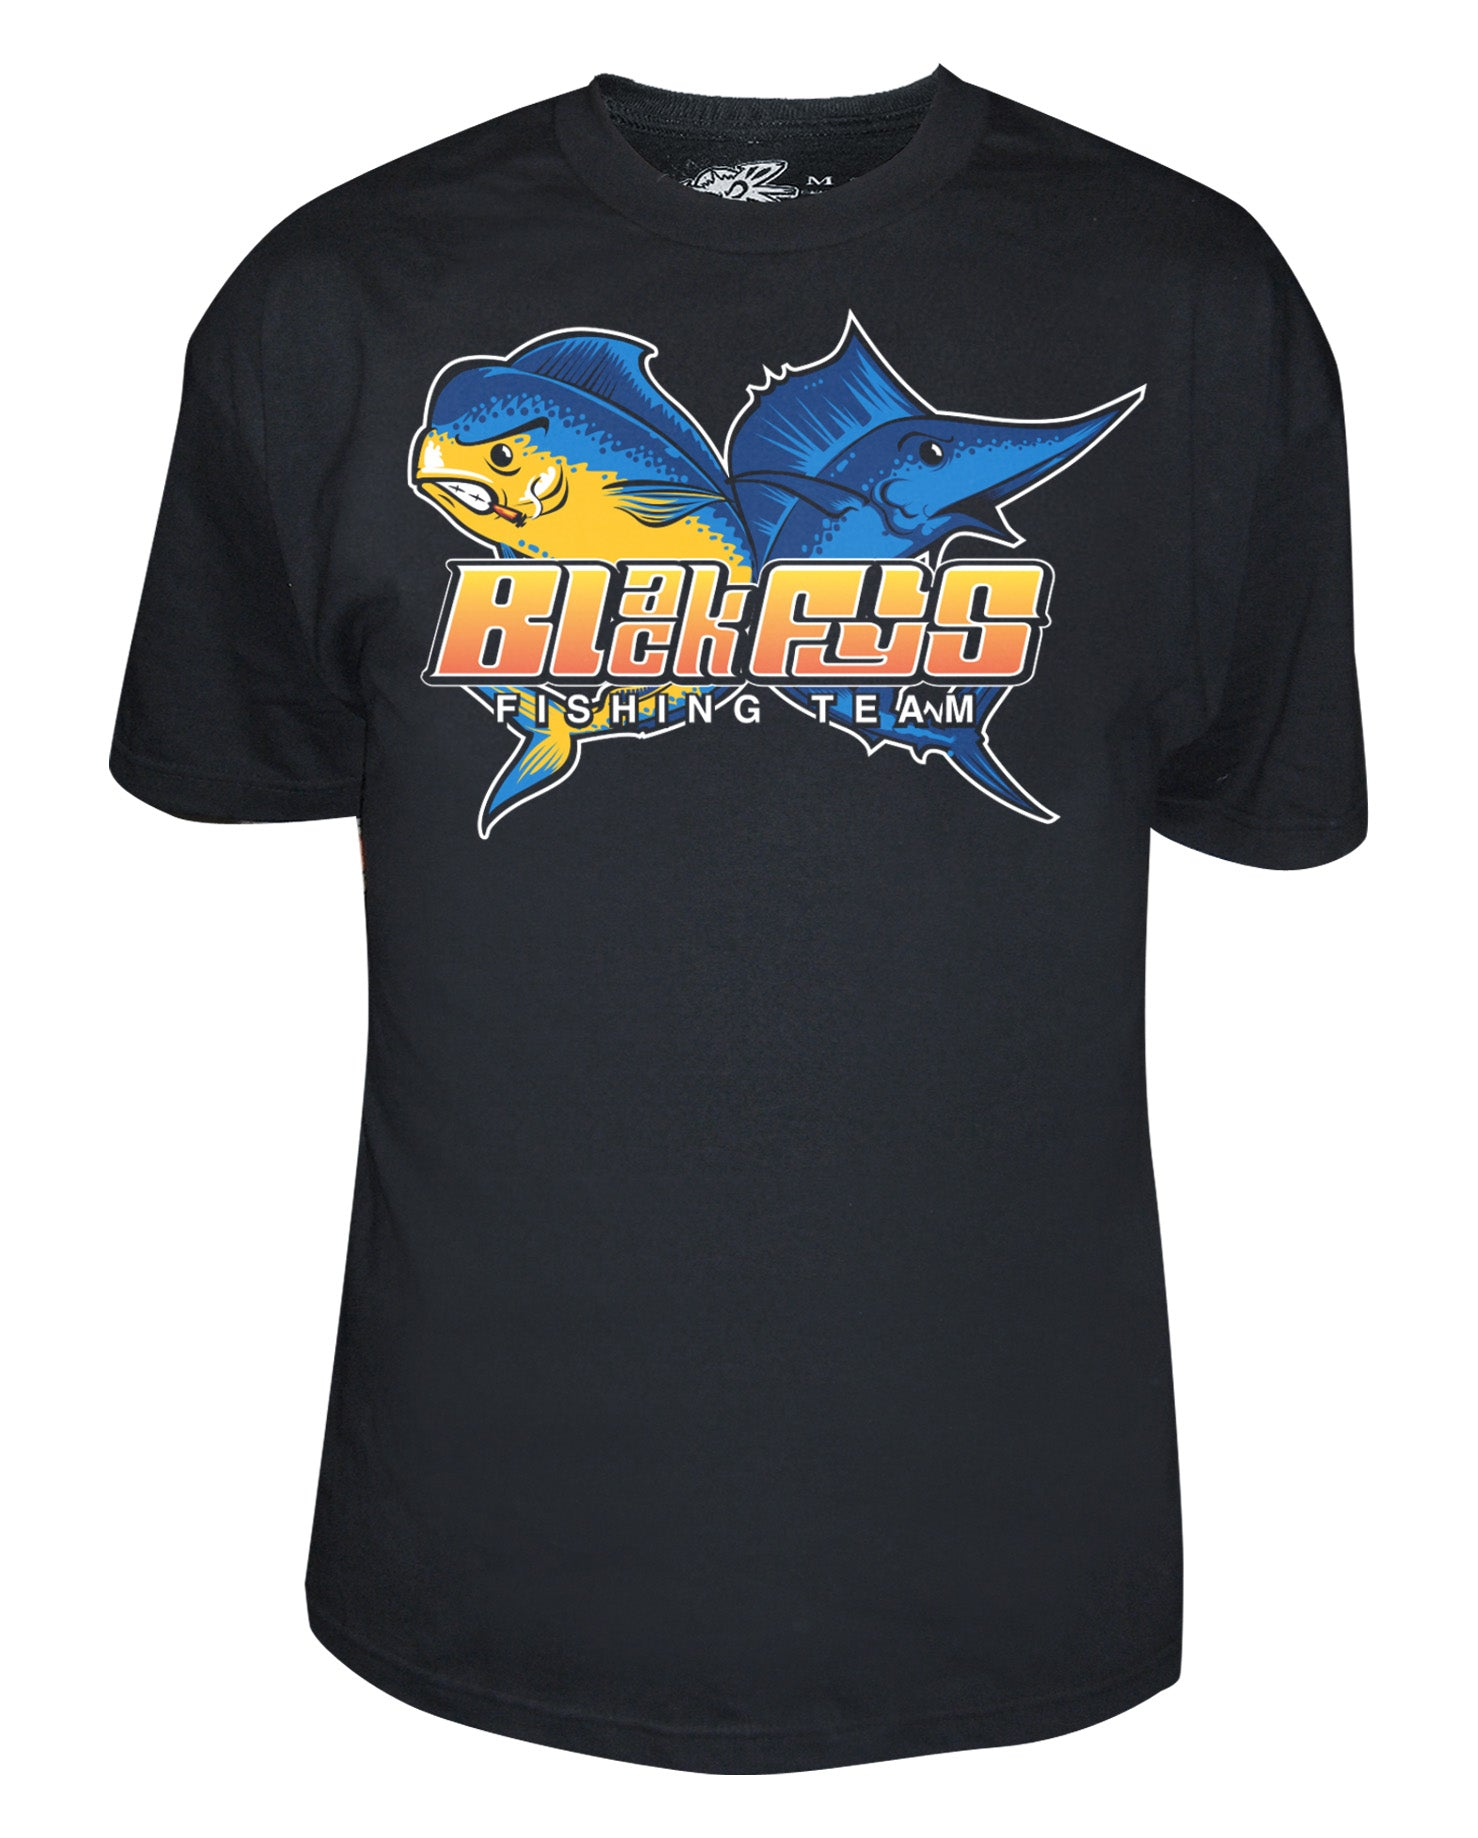 Flys Fishing Team Tee